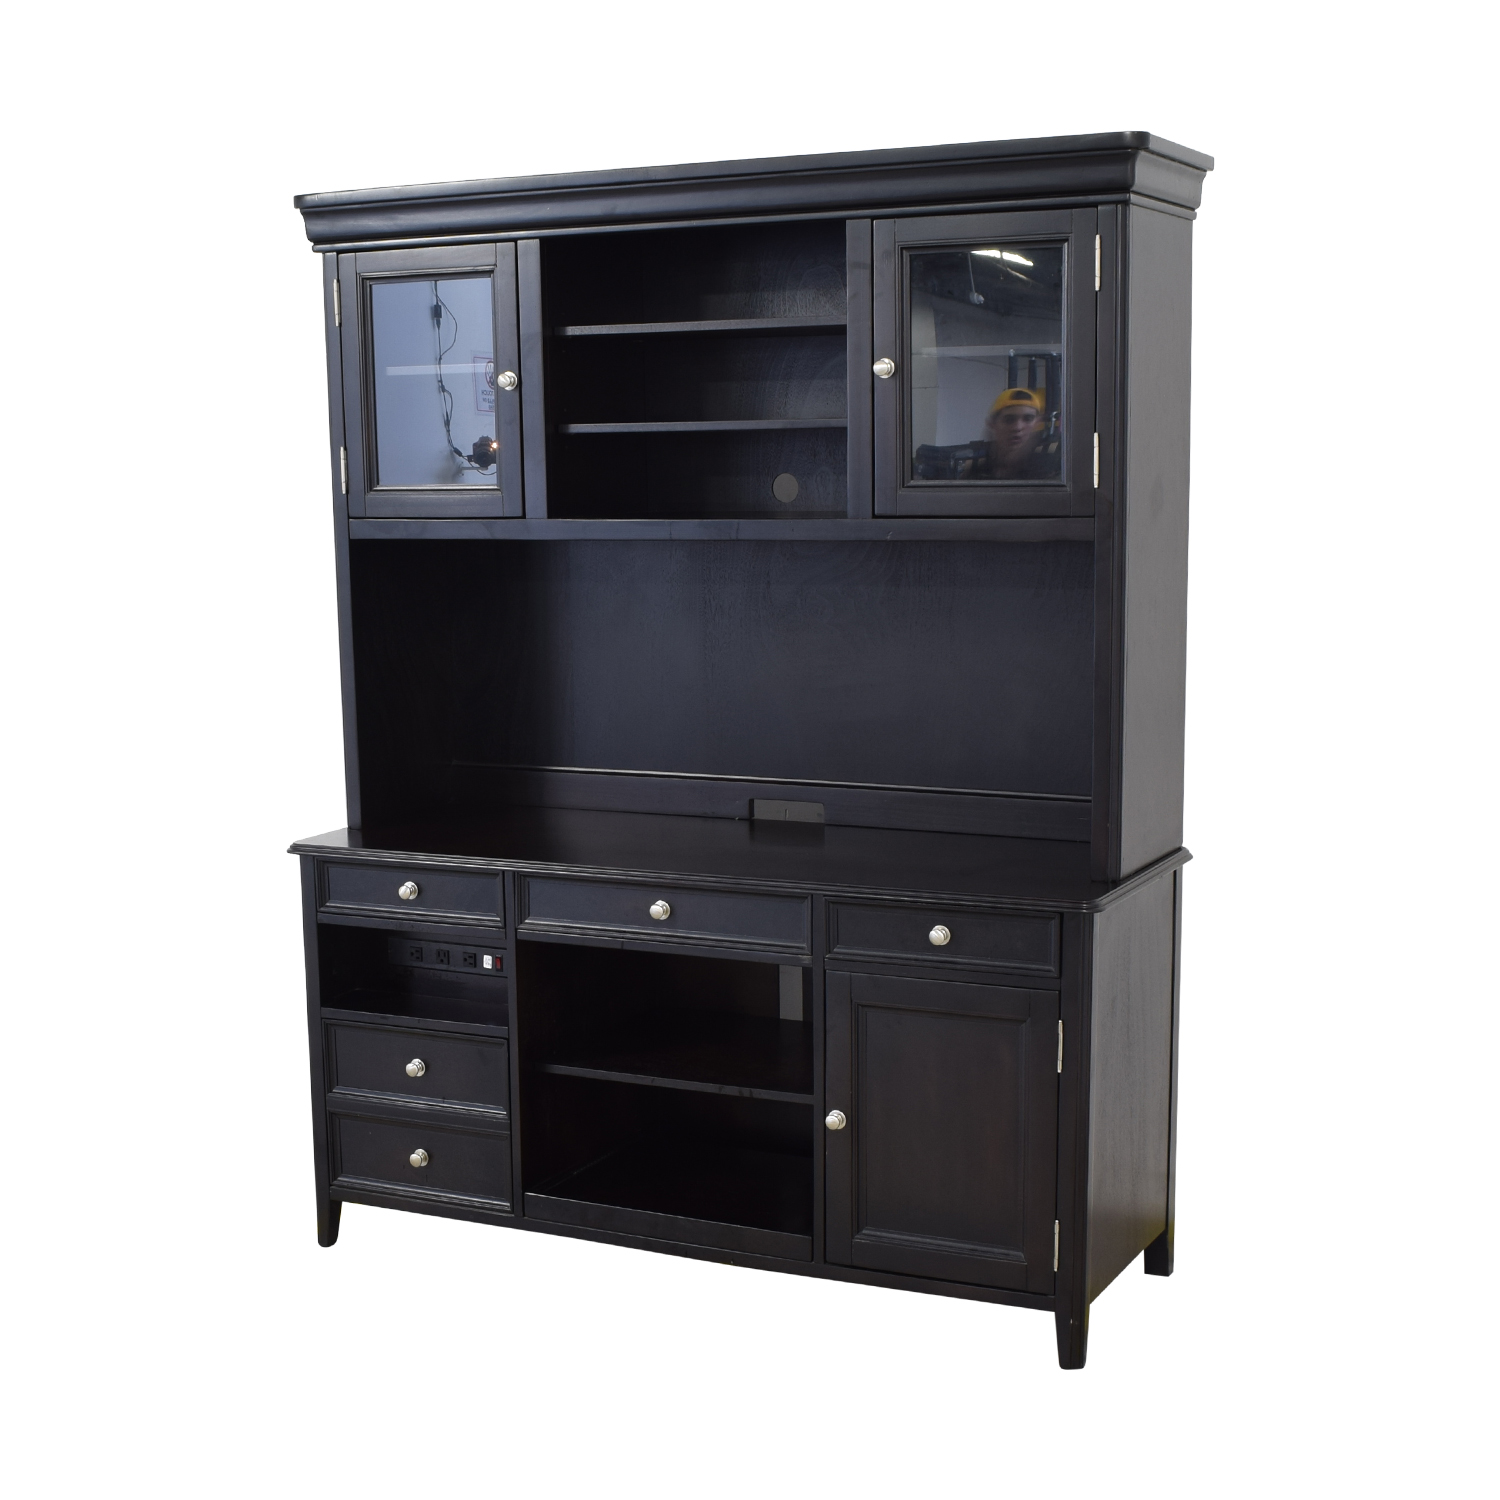 Ashley Furniture Ashley Furniture Large Credenza and Hutch coupon